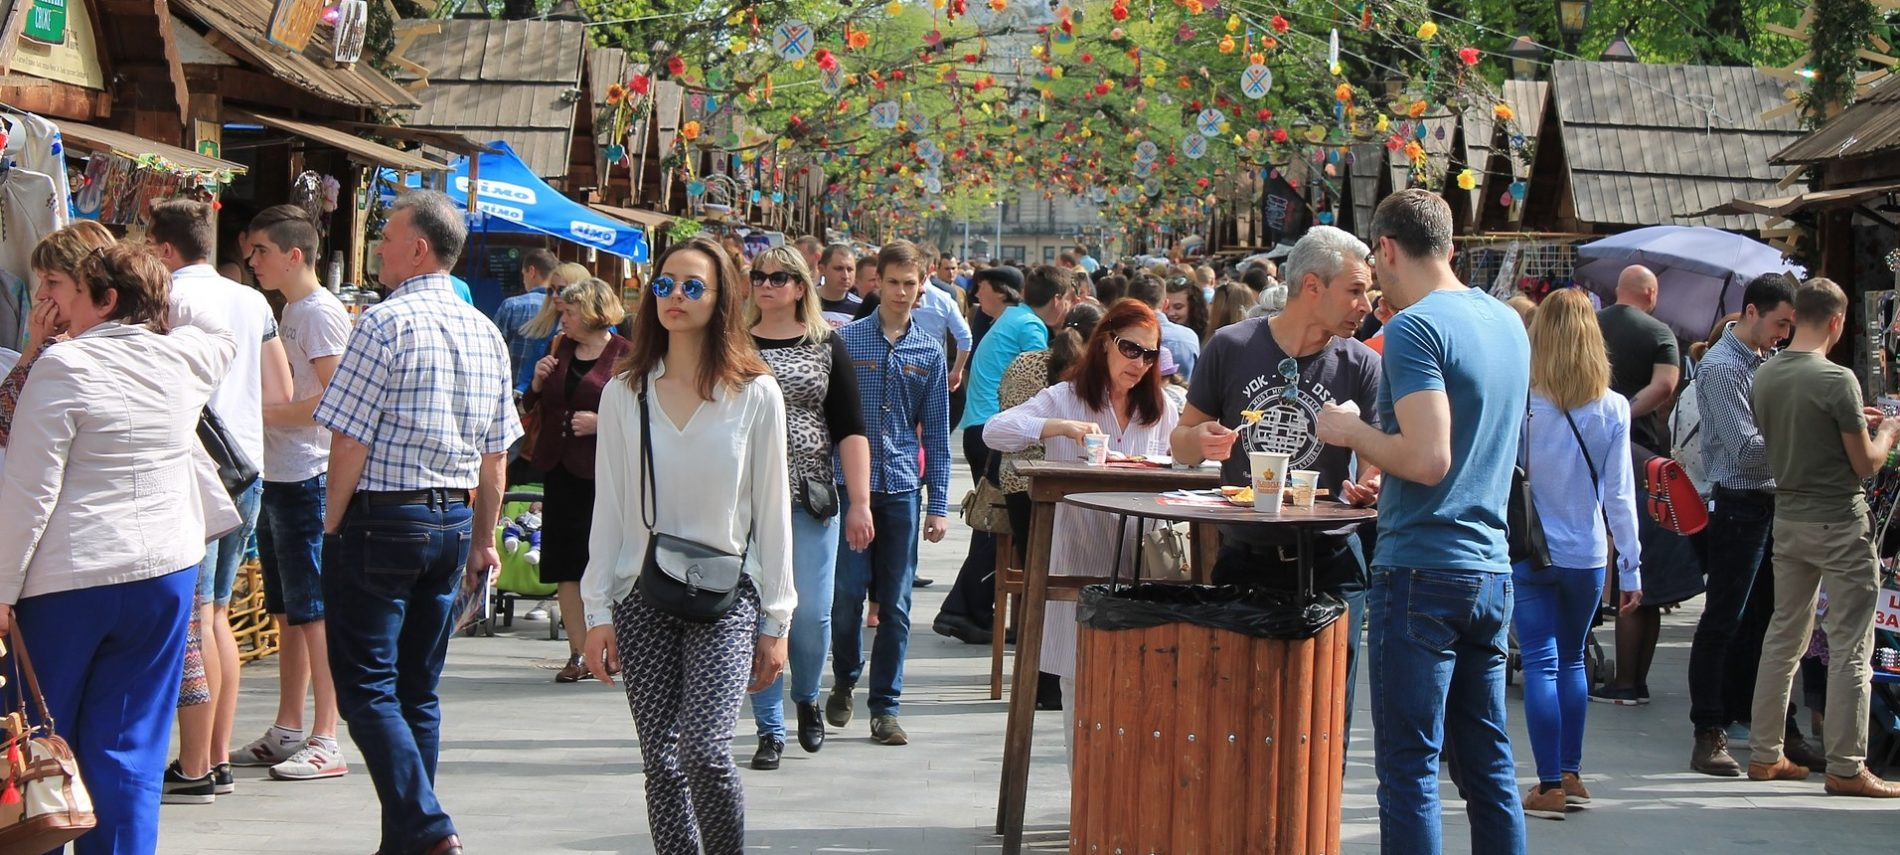 Street fair with people walking, eating at tables. Colorful decorations at top.